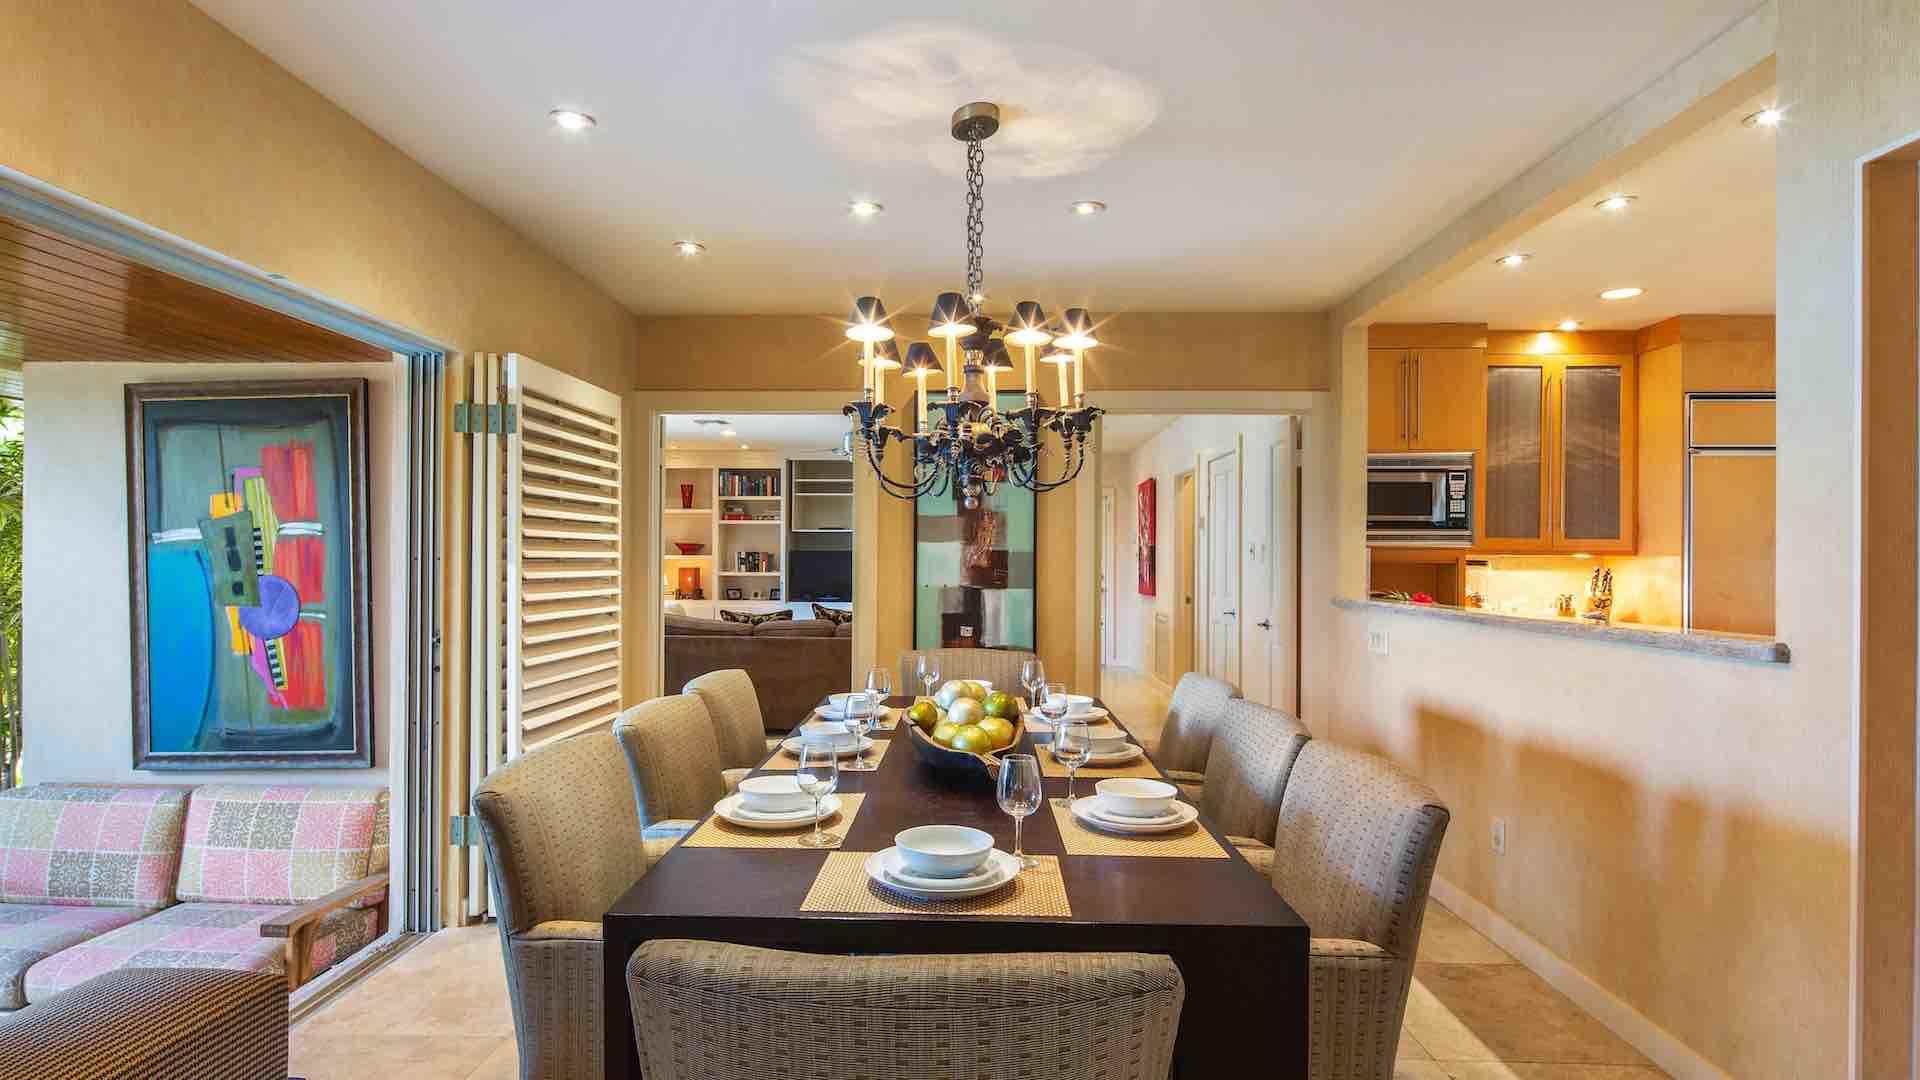 The dining room is separate, but is open to the living room and kitchen…